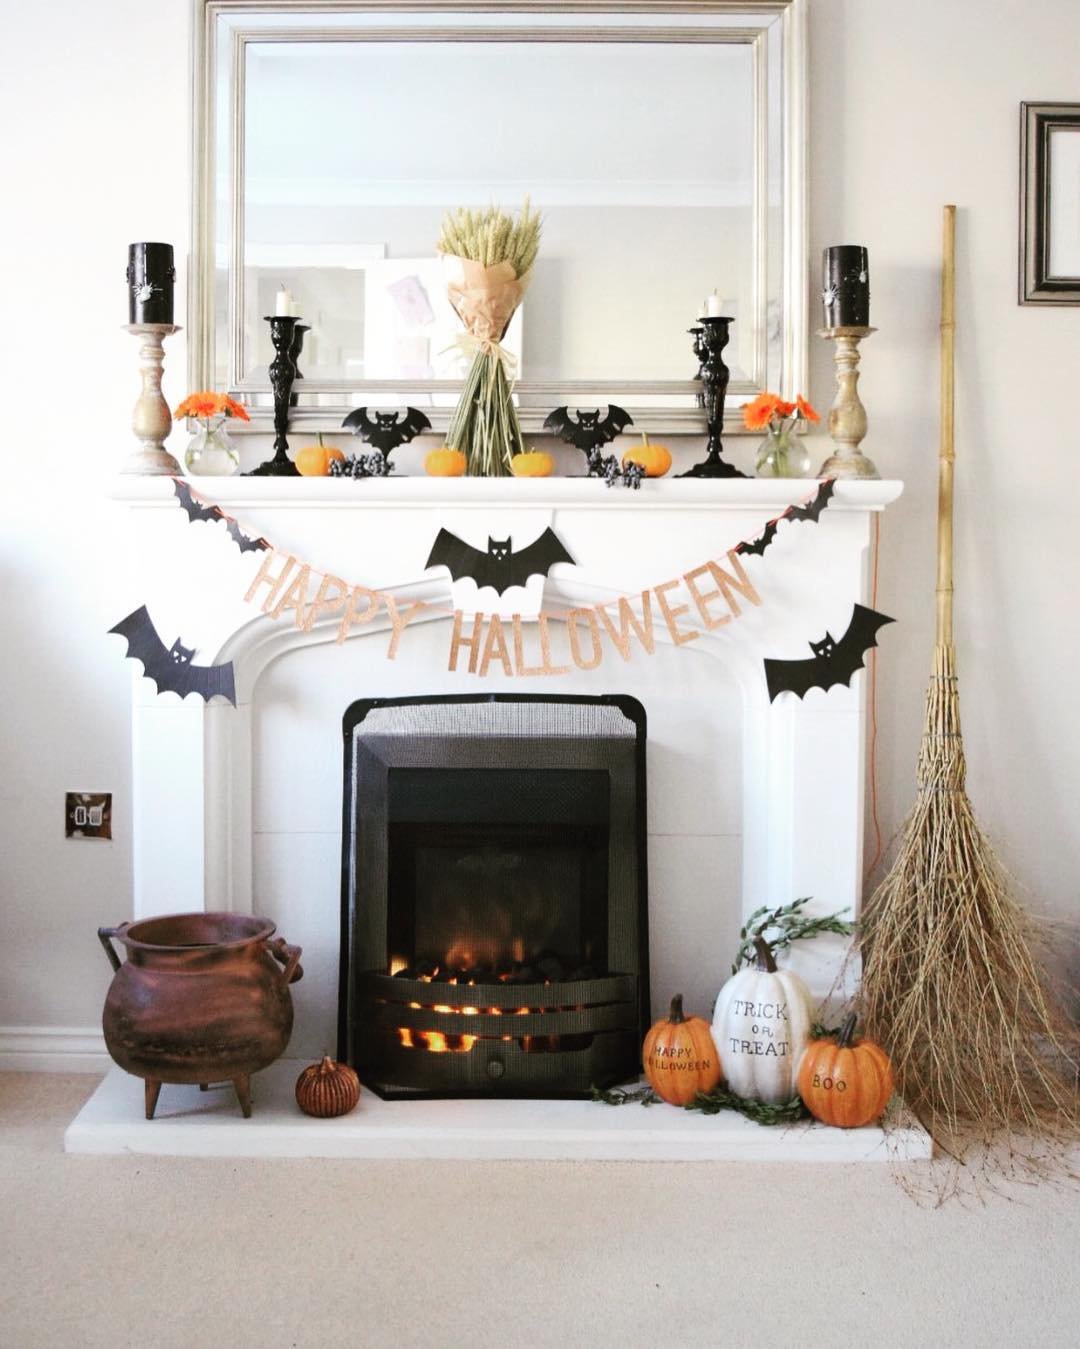 Happy Halloween garland, witch broom, pumpkins, paper bats and candles all used to decorate the Mantel for Halloween party.